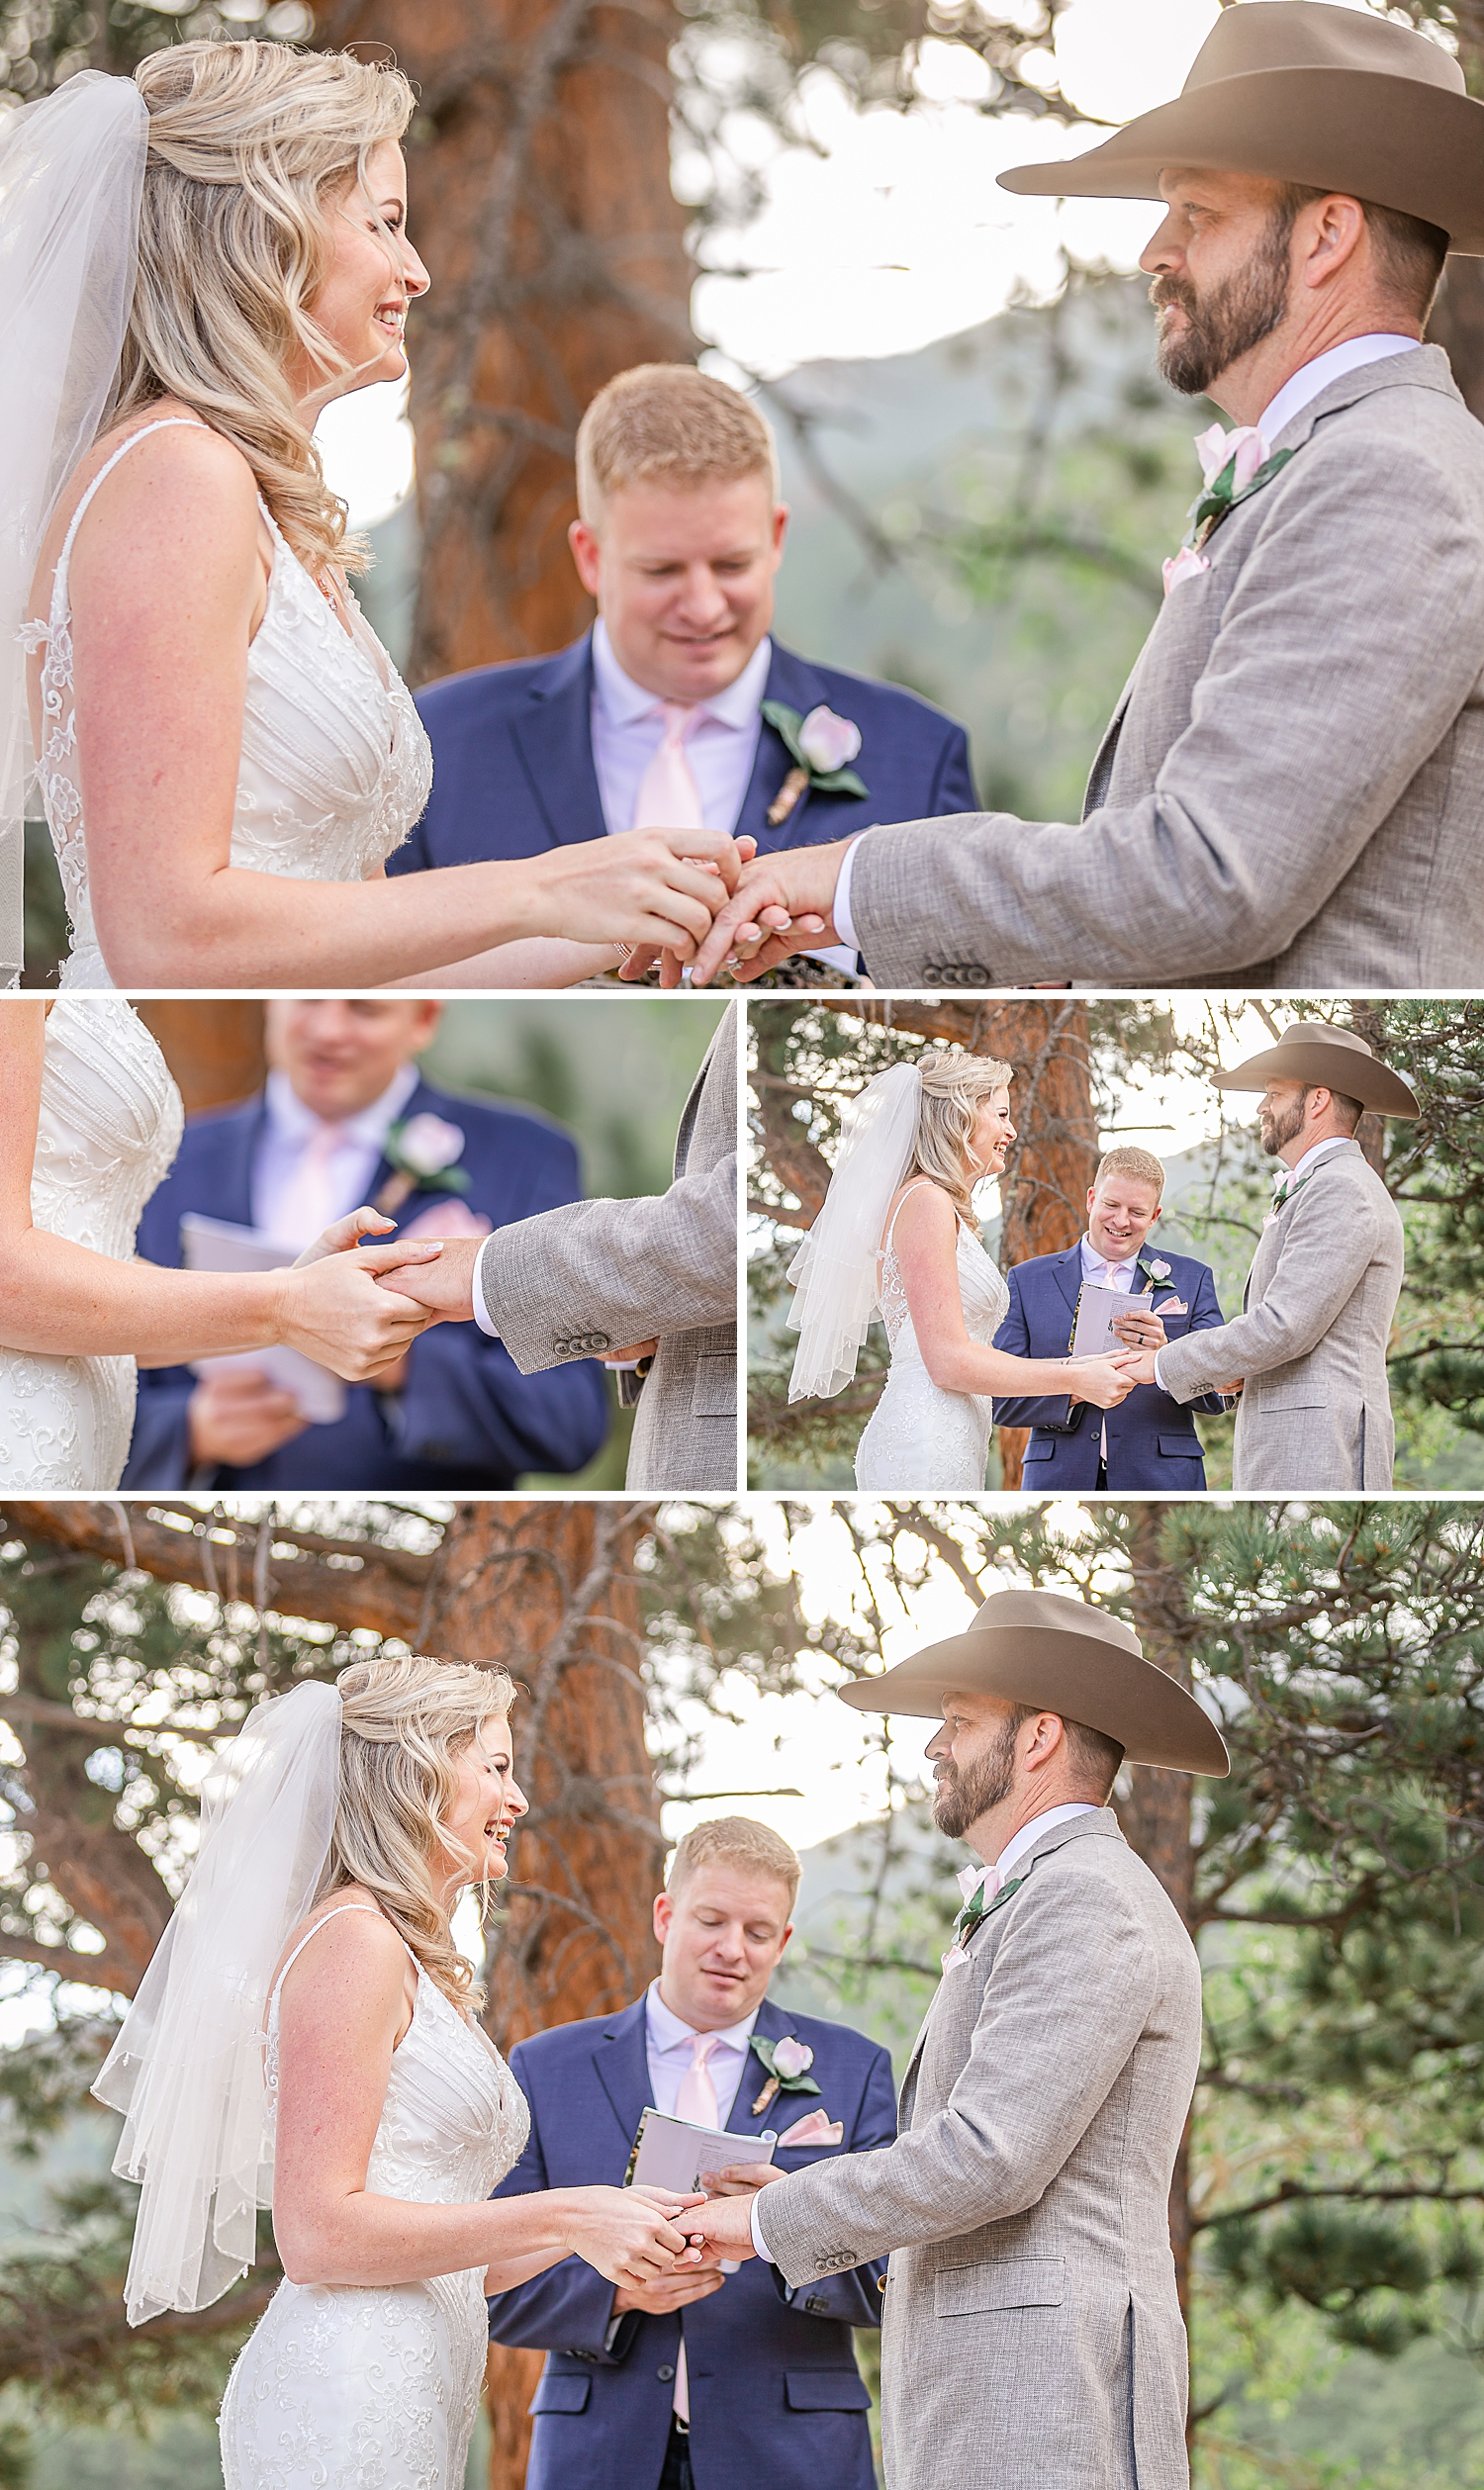 Carly-Barton-Photography-Rocky-Mountain-National-Park-Estes-Park-Wedding-Elopement_0094.jpg